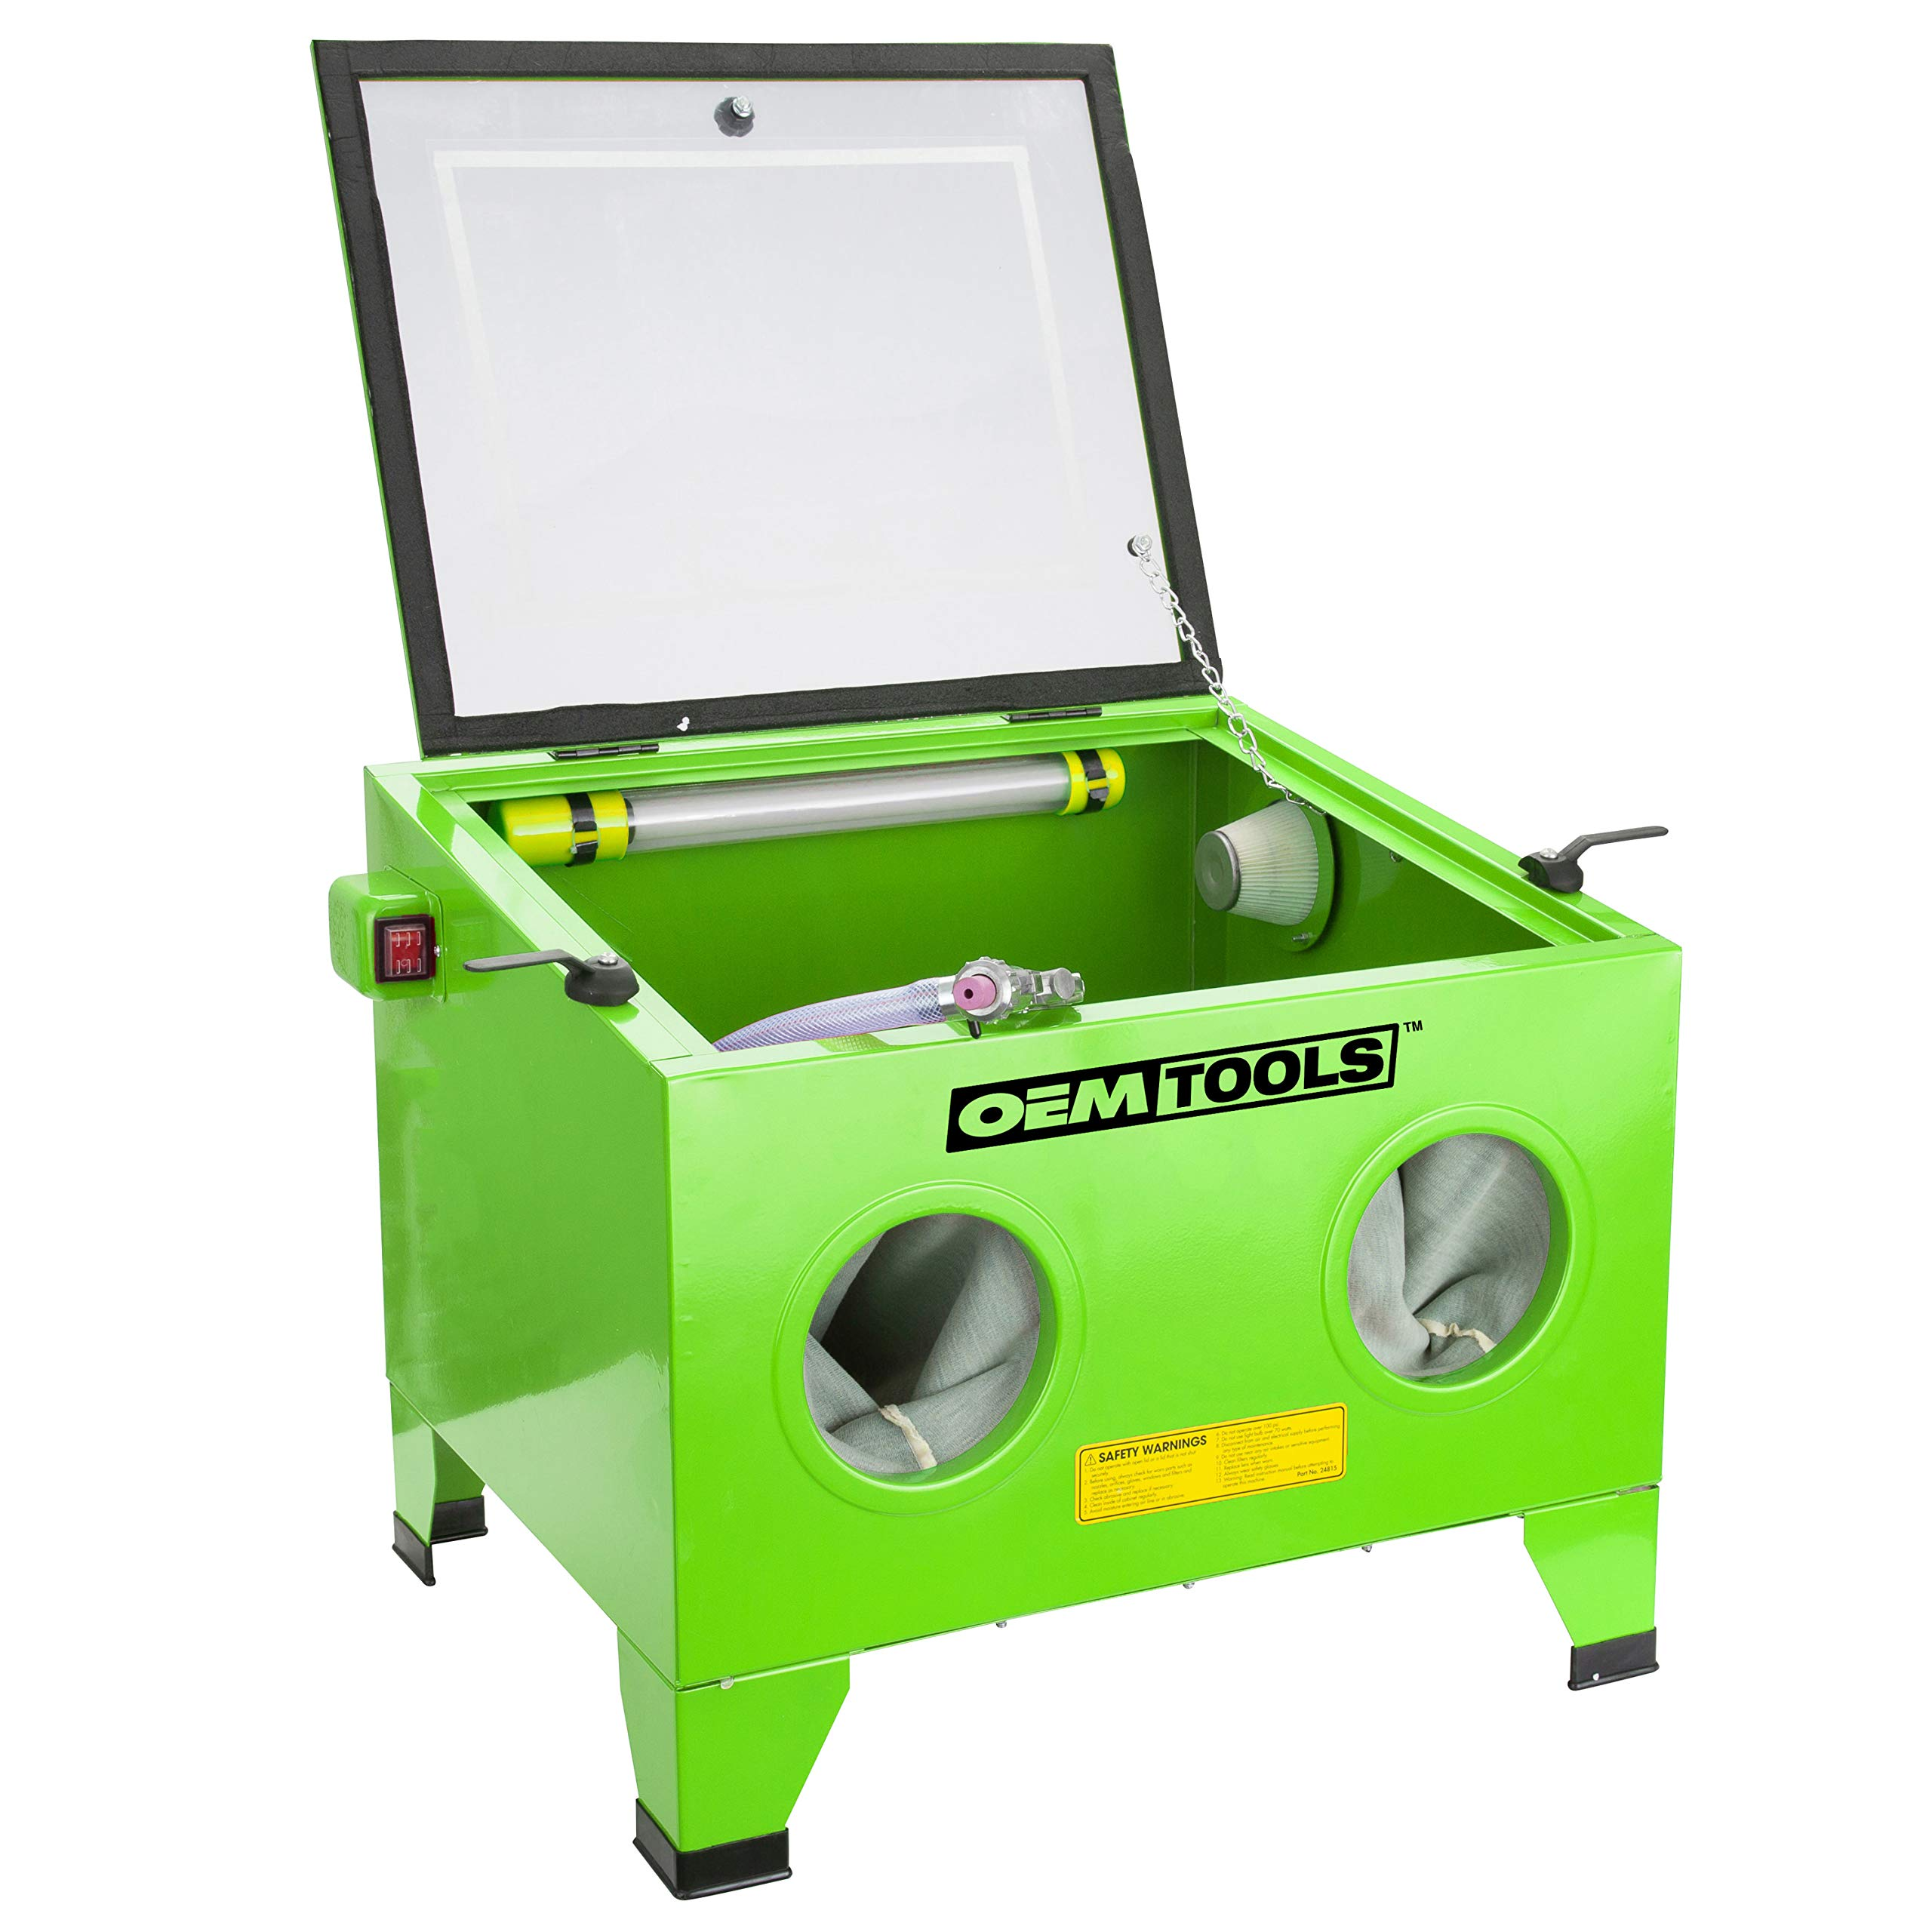 OEMTOOLS 24815 Bench Top Abrasive Blast Cabinet by OEMTOOLS (Image #1)